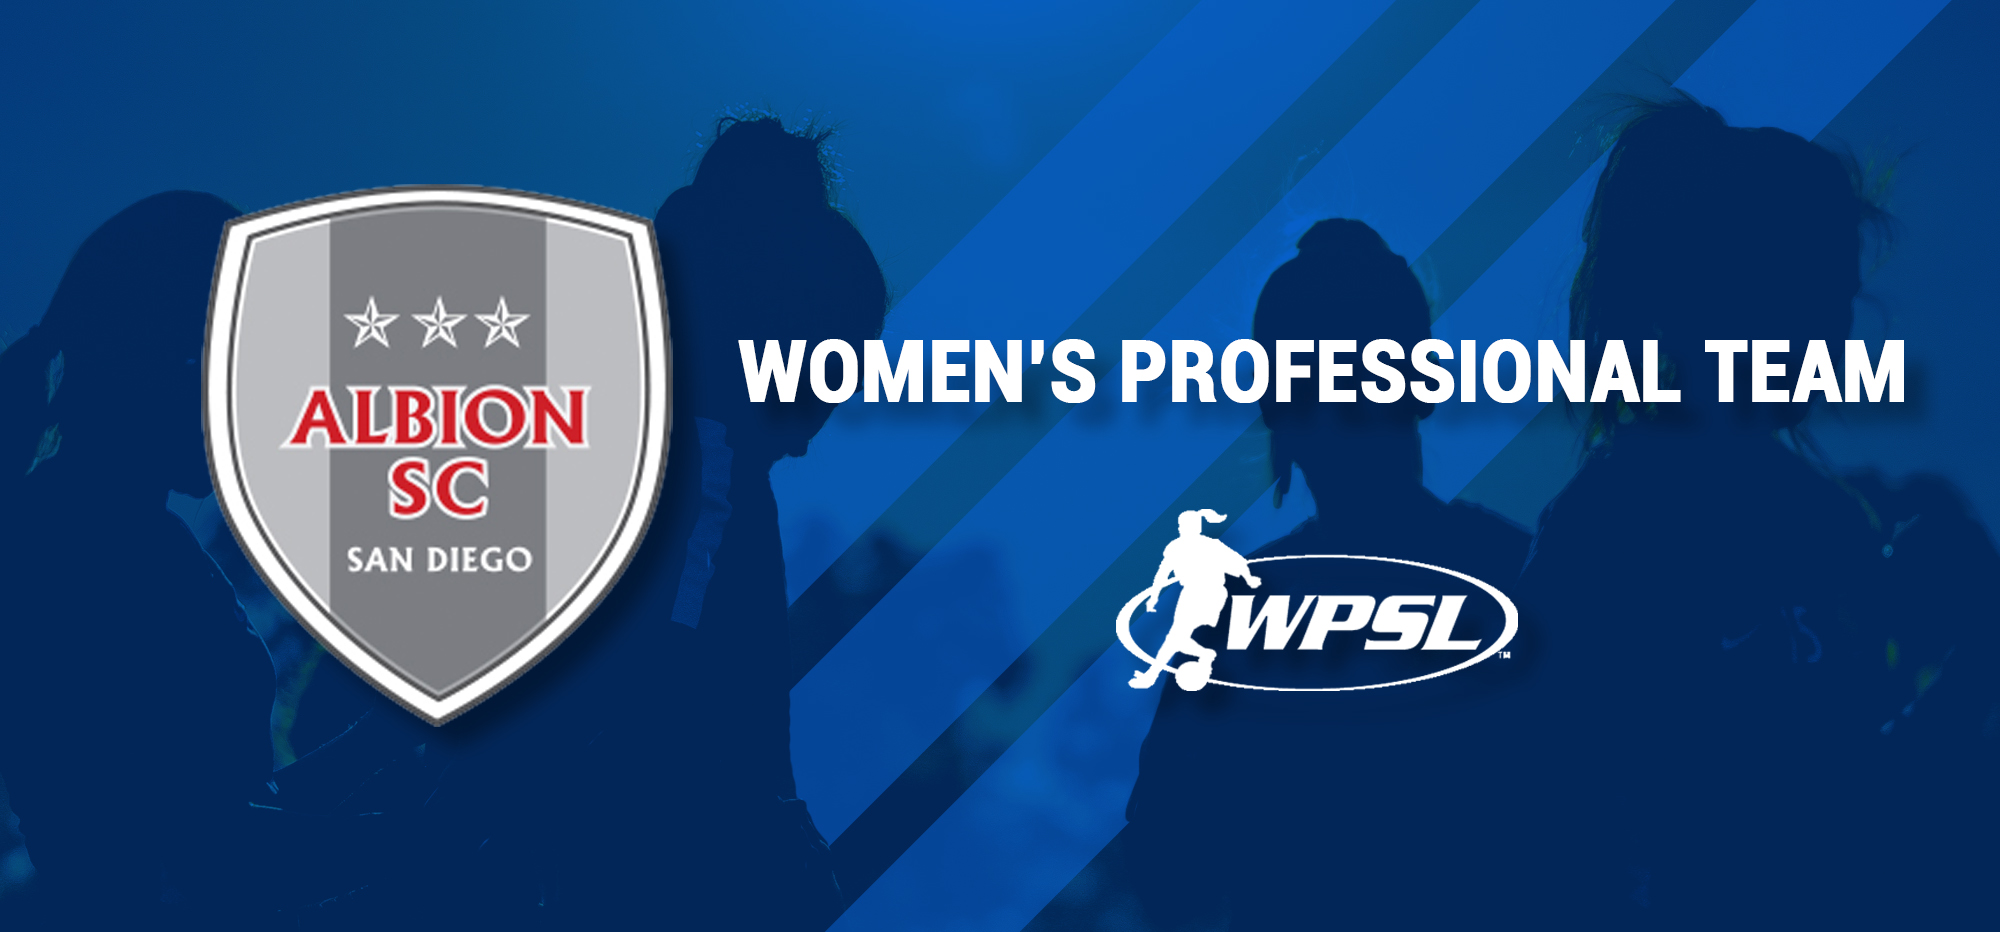 ALBION SC WILL NOW HAVE A WOMENS PROFESSIONAL TEAM TO SIT ATOP THE GIRLS US DEVELOPMENT ACADEMY